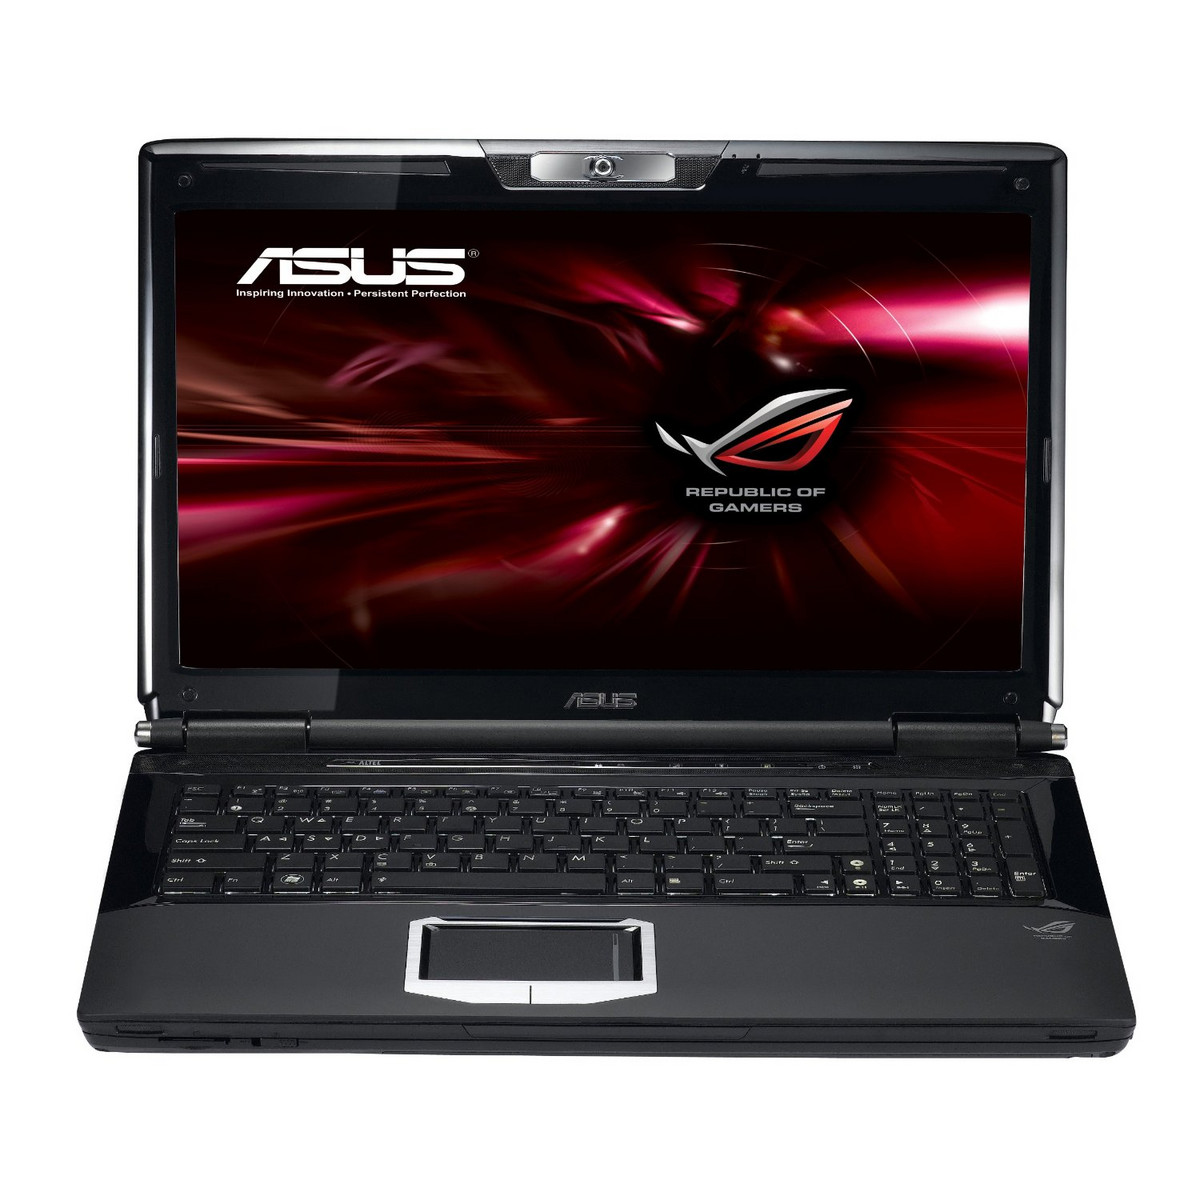 ASUS G51J 3D NOTEBOOK AUDIO DRIVERS